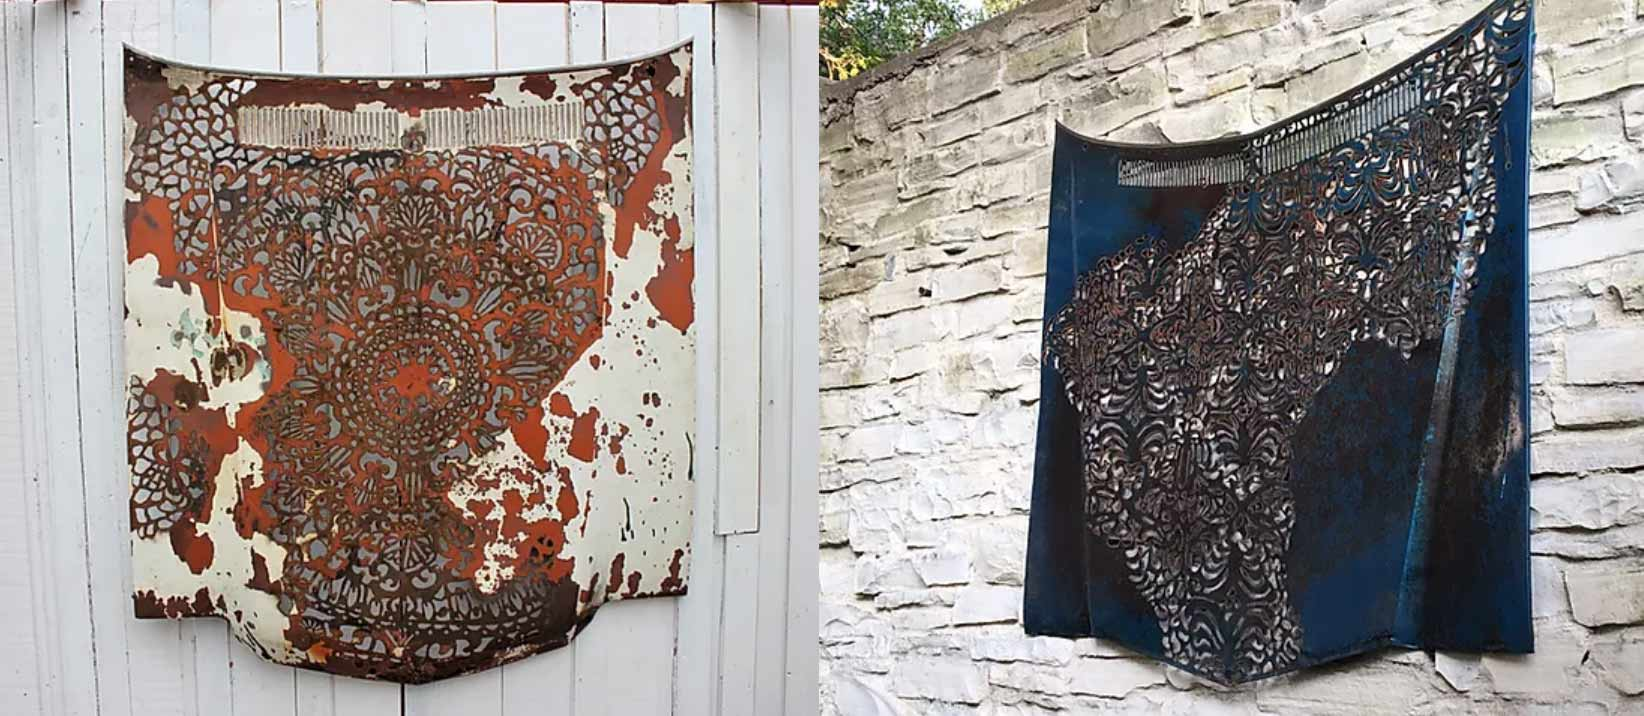 Pieces of metal taken from old cars, like a hood or a door, with intricate patterns carved out of them, and a mix of paint and rust for the finish.